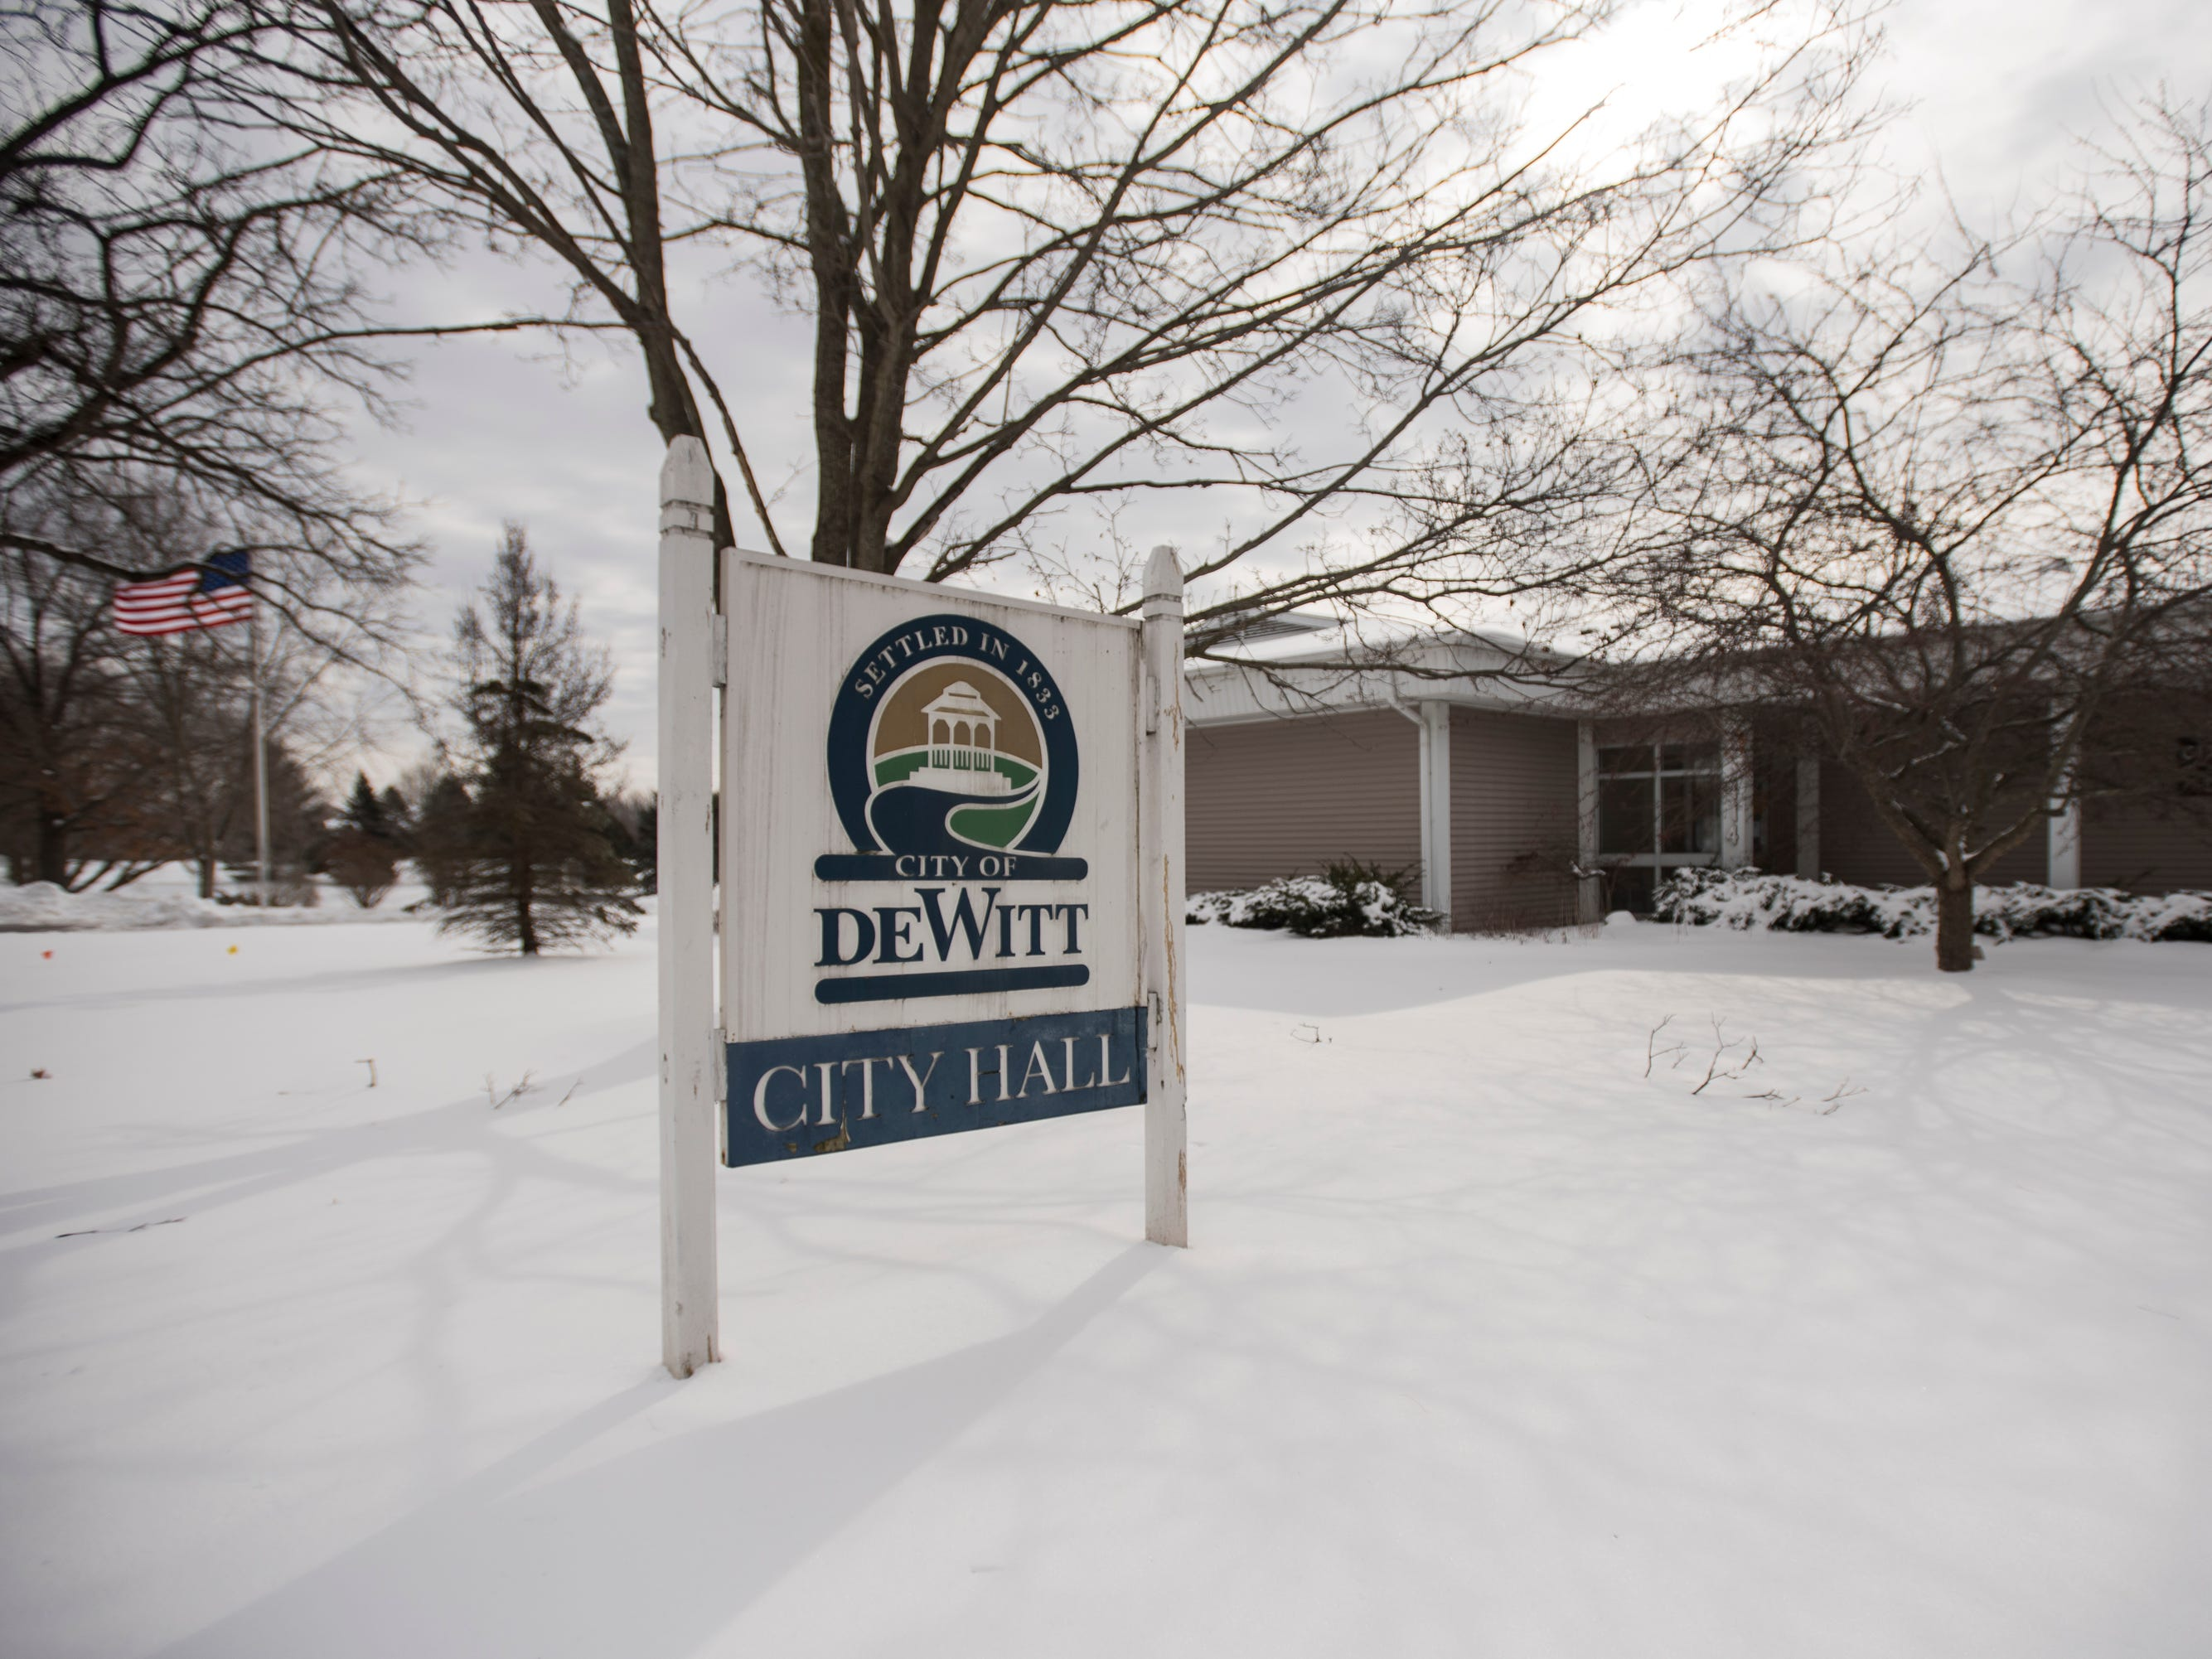 Construction of new $2 million City Hall in DeWitt  to start in April